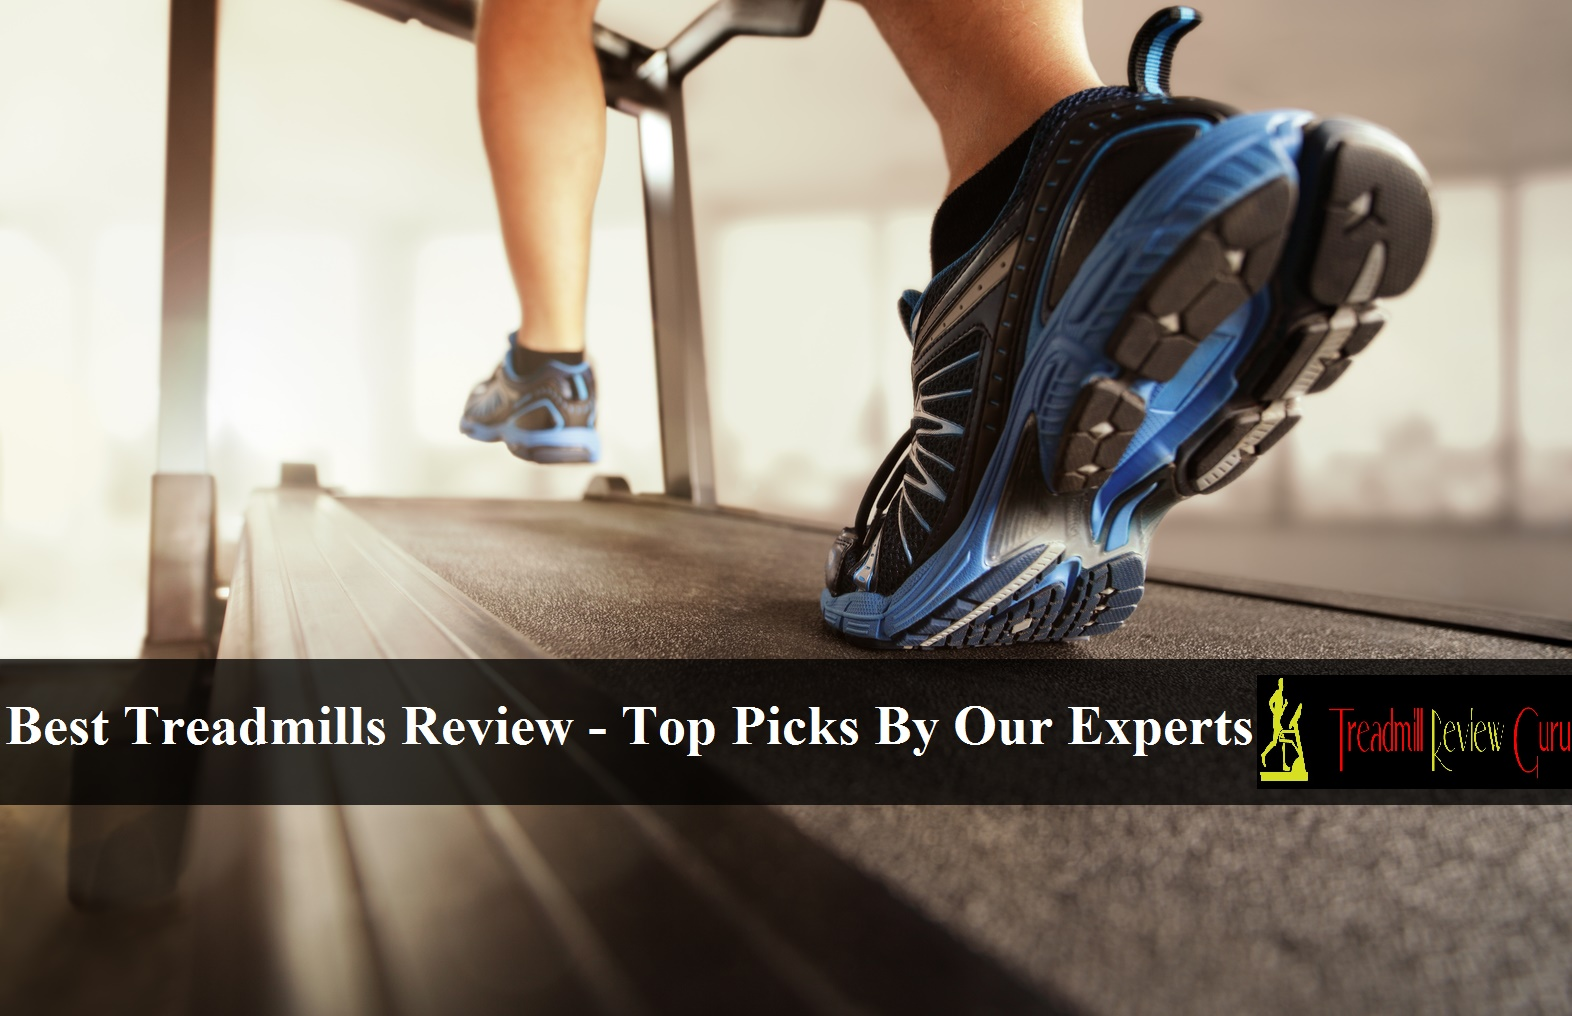 Best Treadmills Review 2018 Top Picks By Our Experts